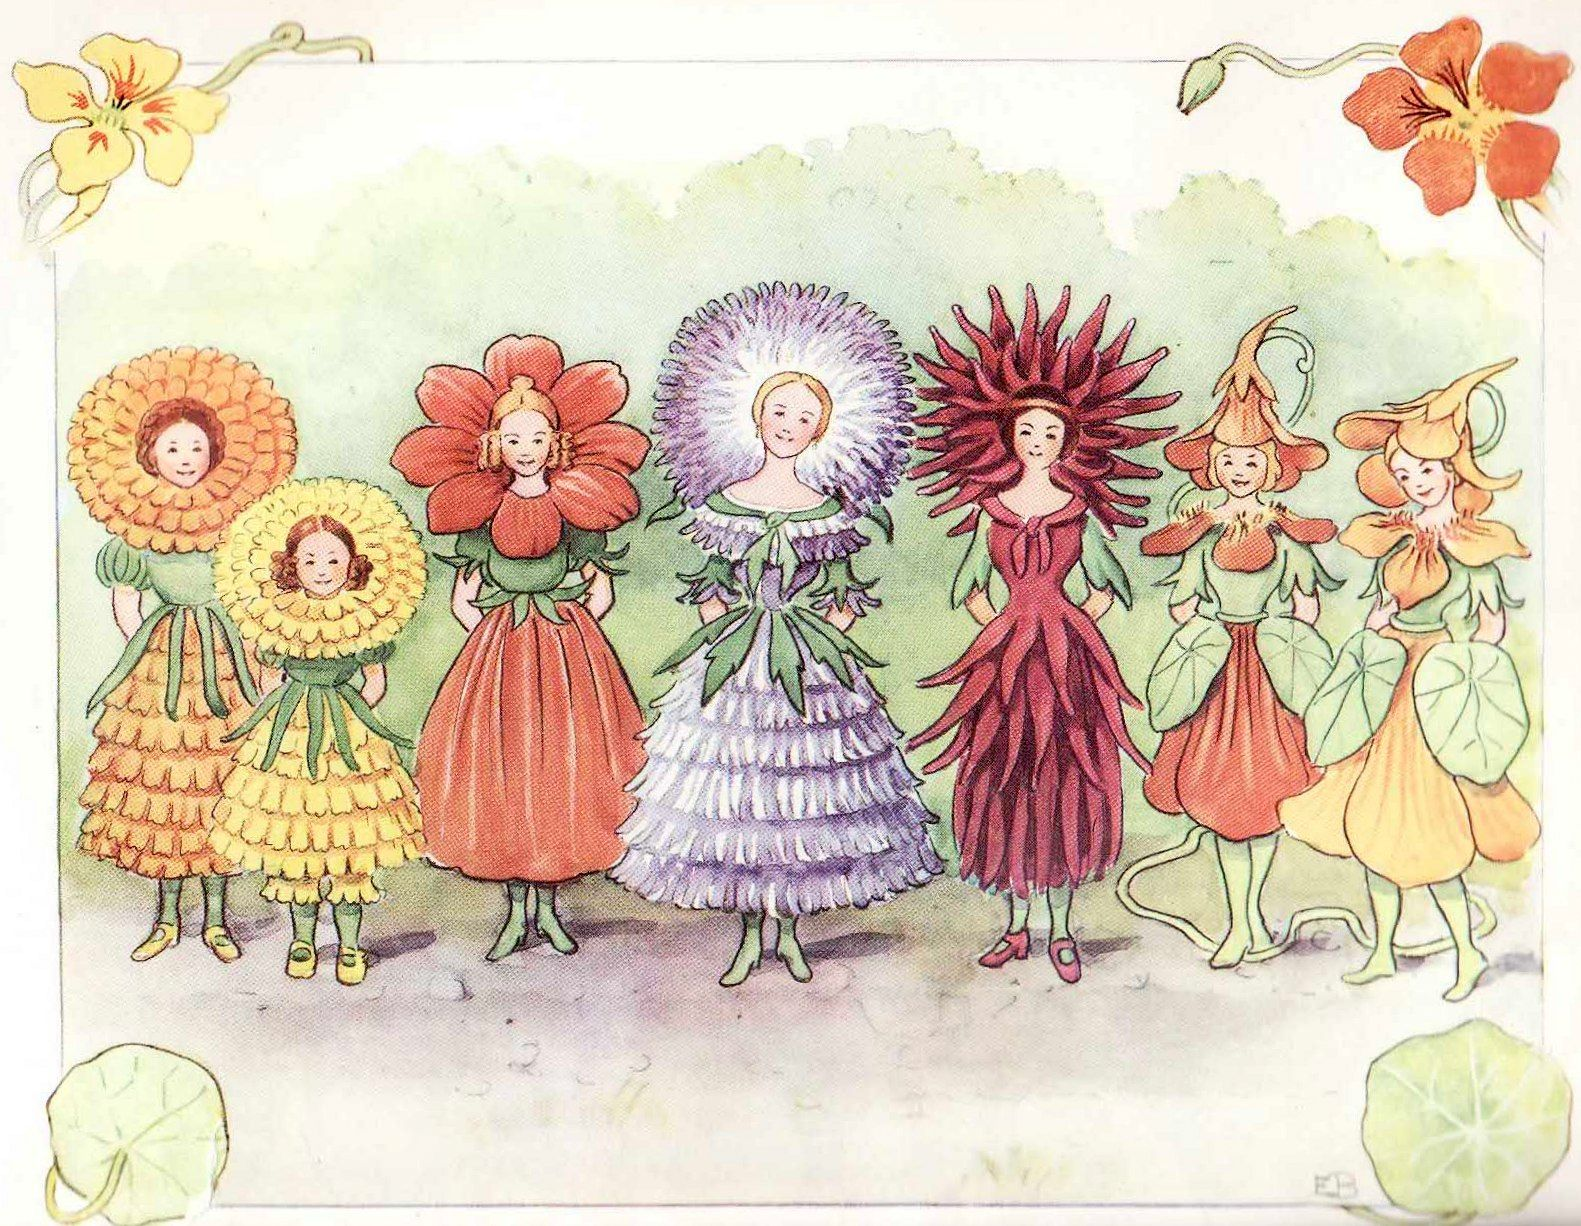 Elsa Beskow illustration:The flower's festival from Christopher's Harvest Time, 1914 - Sweden